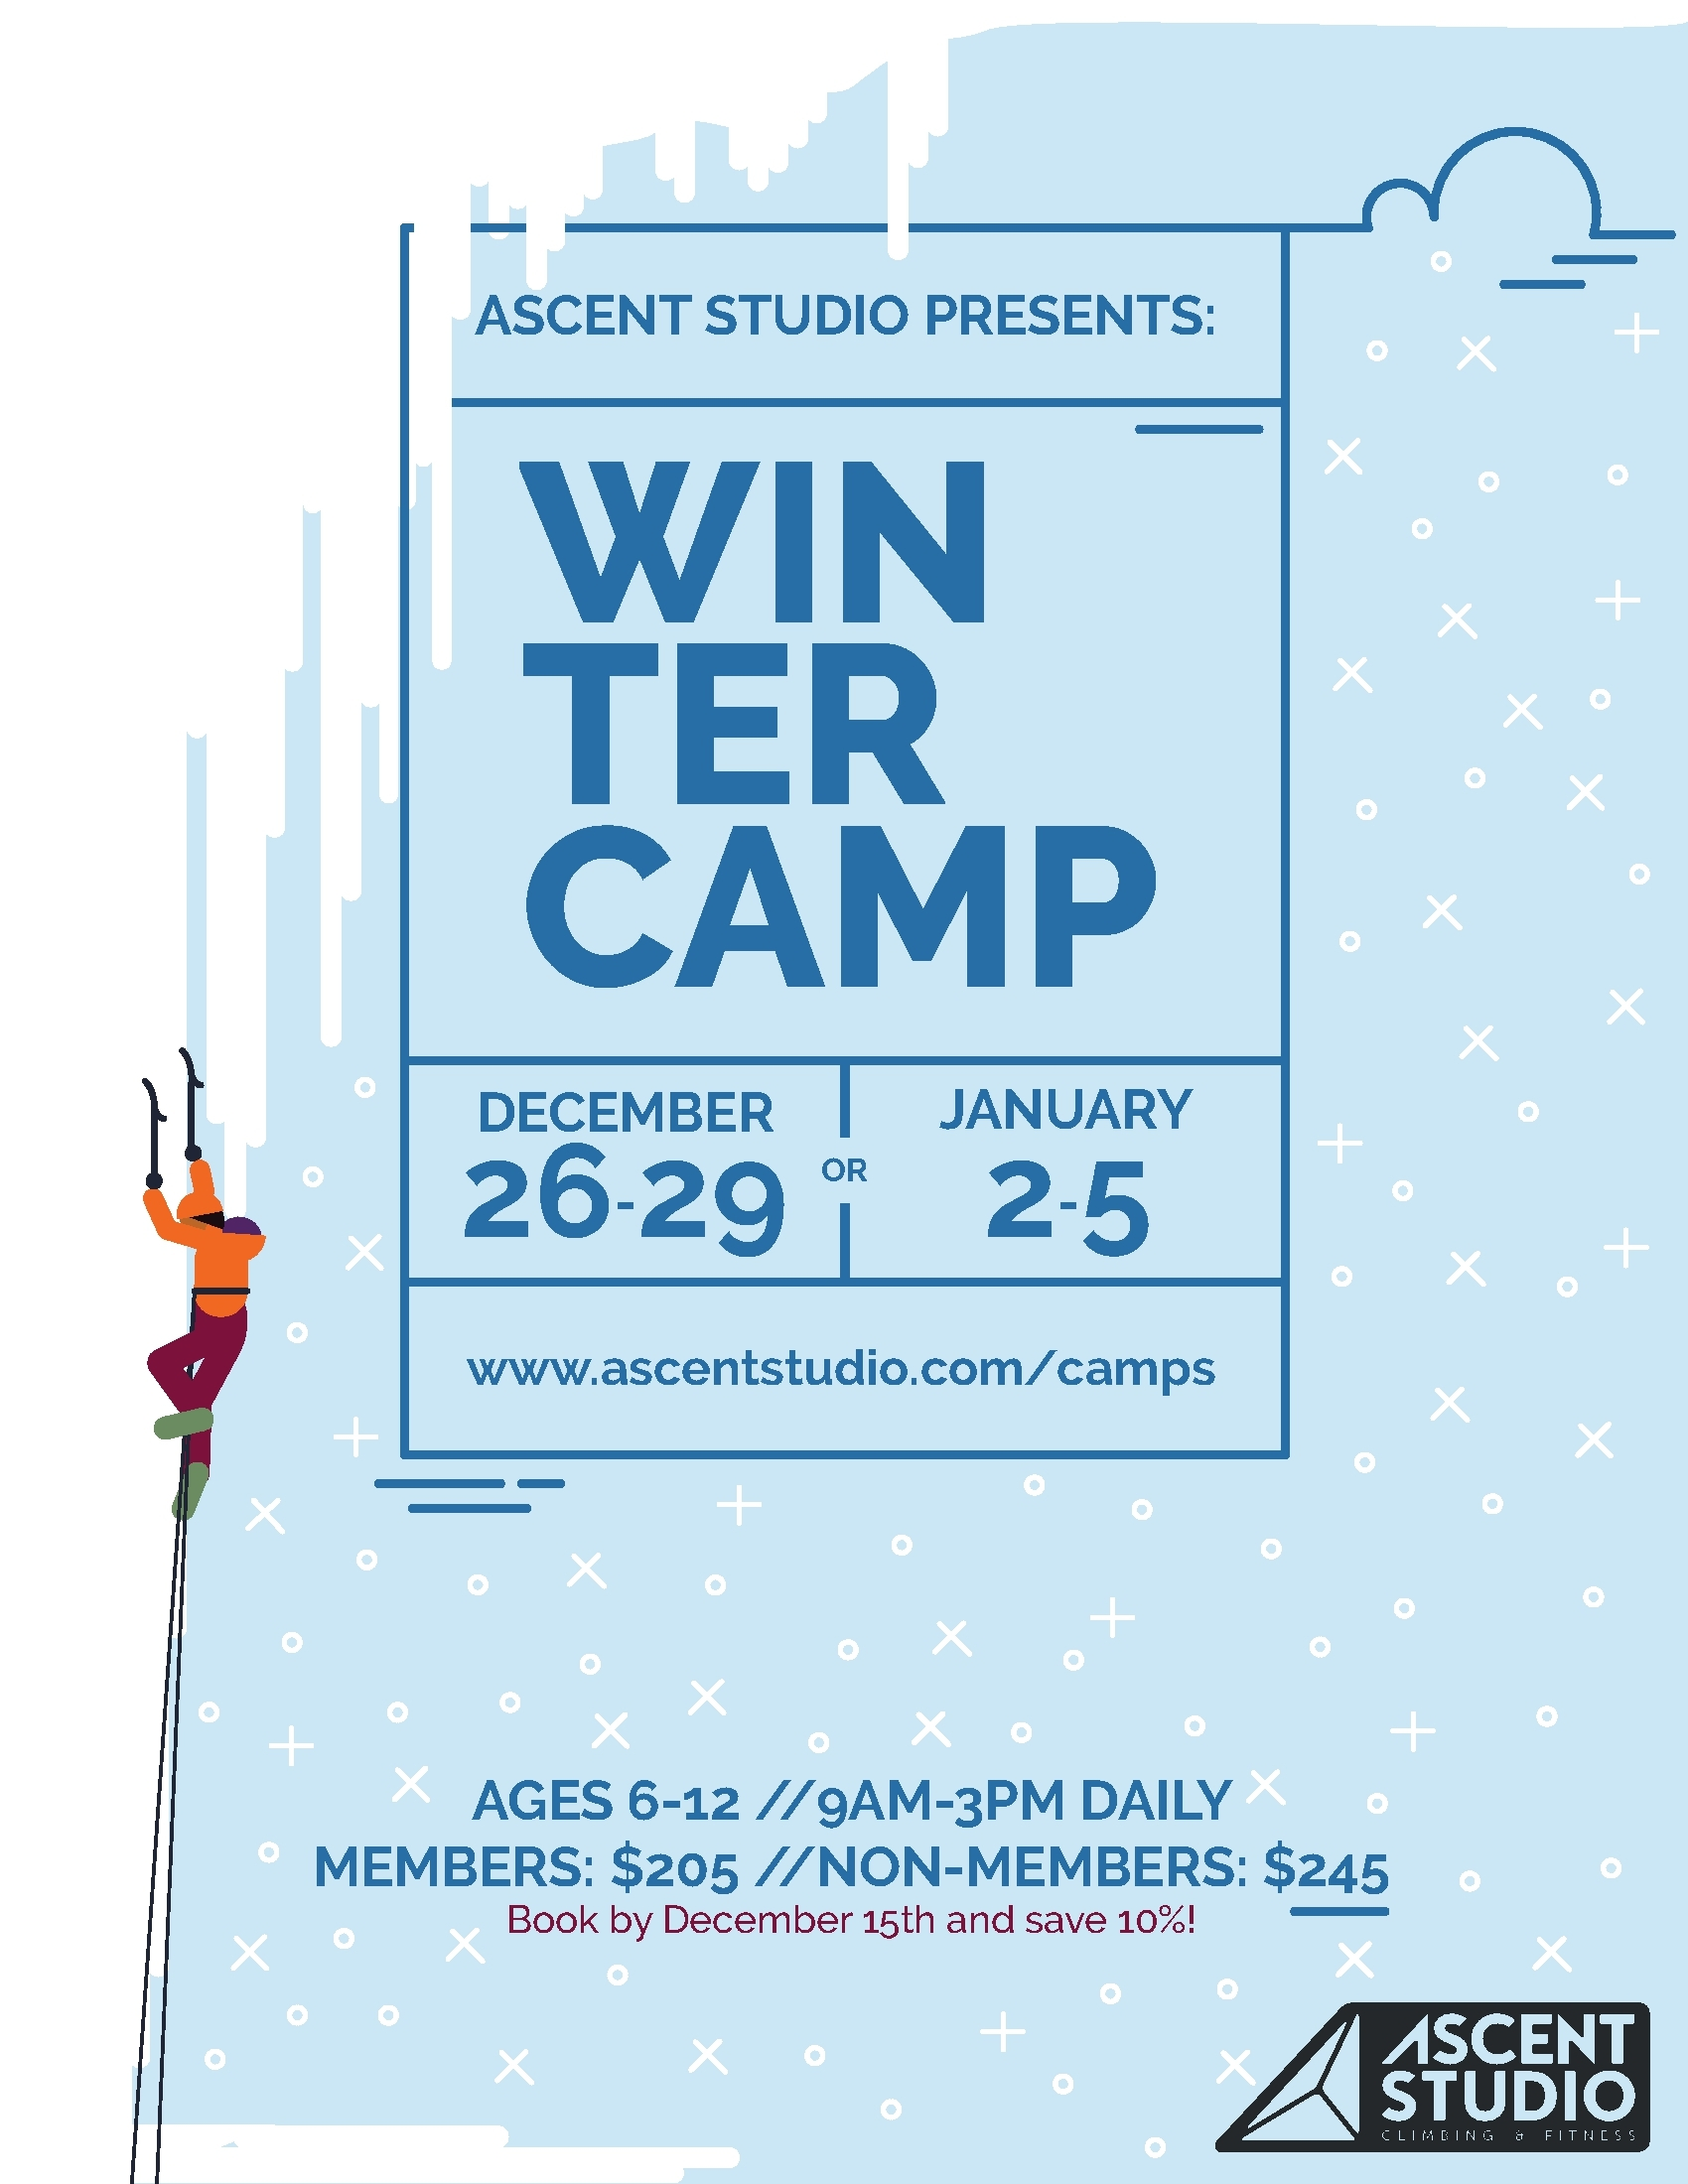 Ascent_Winter_Camp_001